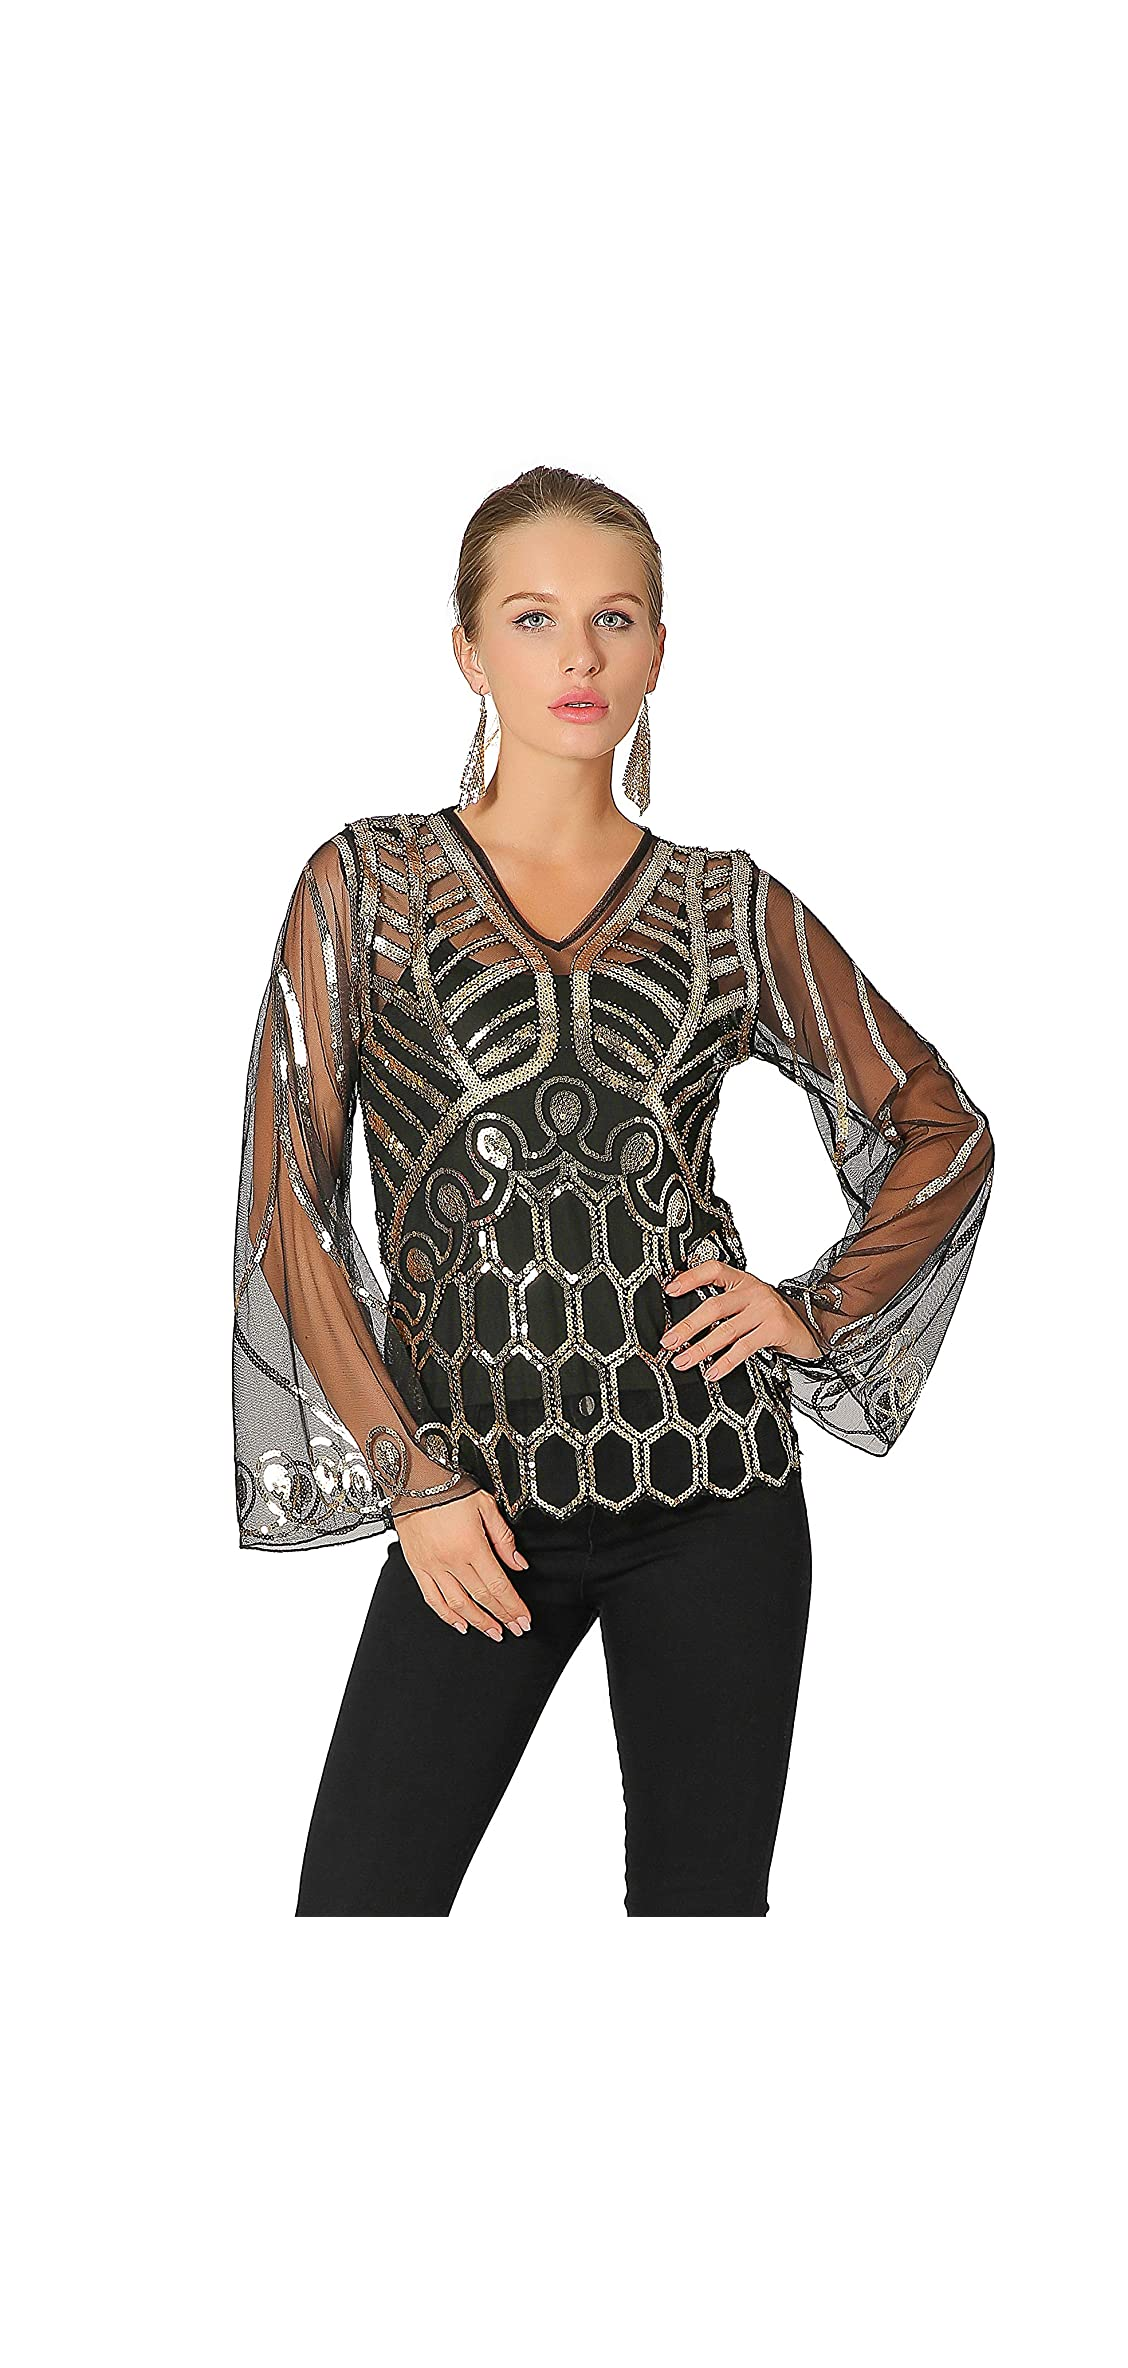 Pagoda Sleeve Tops Lace Cover Up V Neck Sequins Art Deco